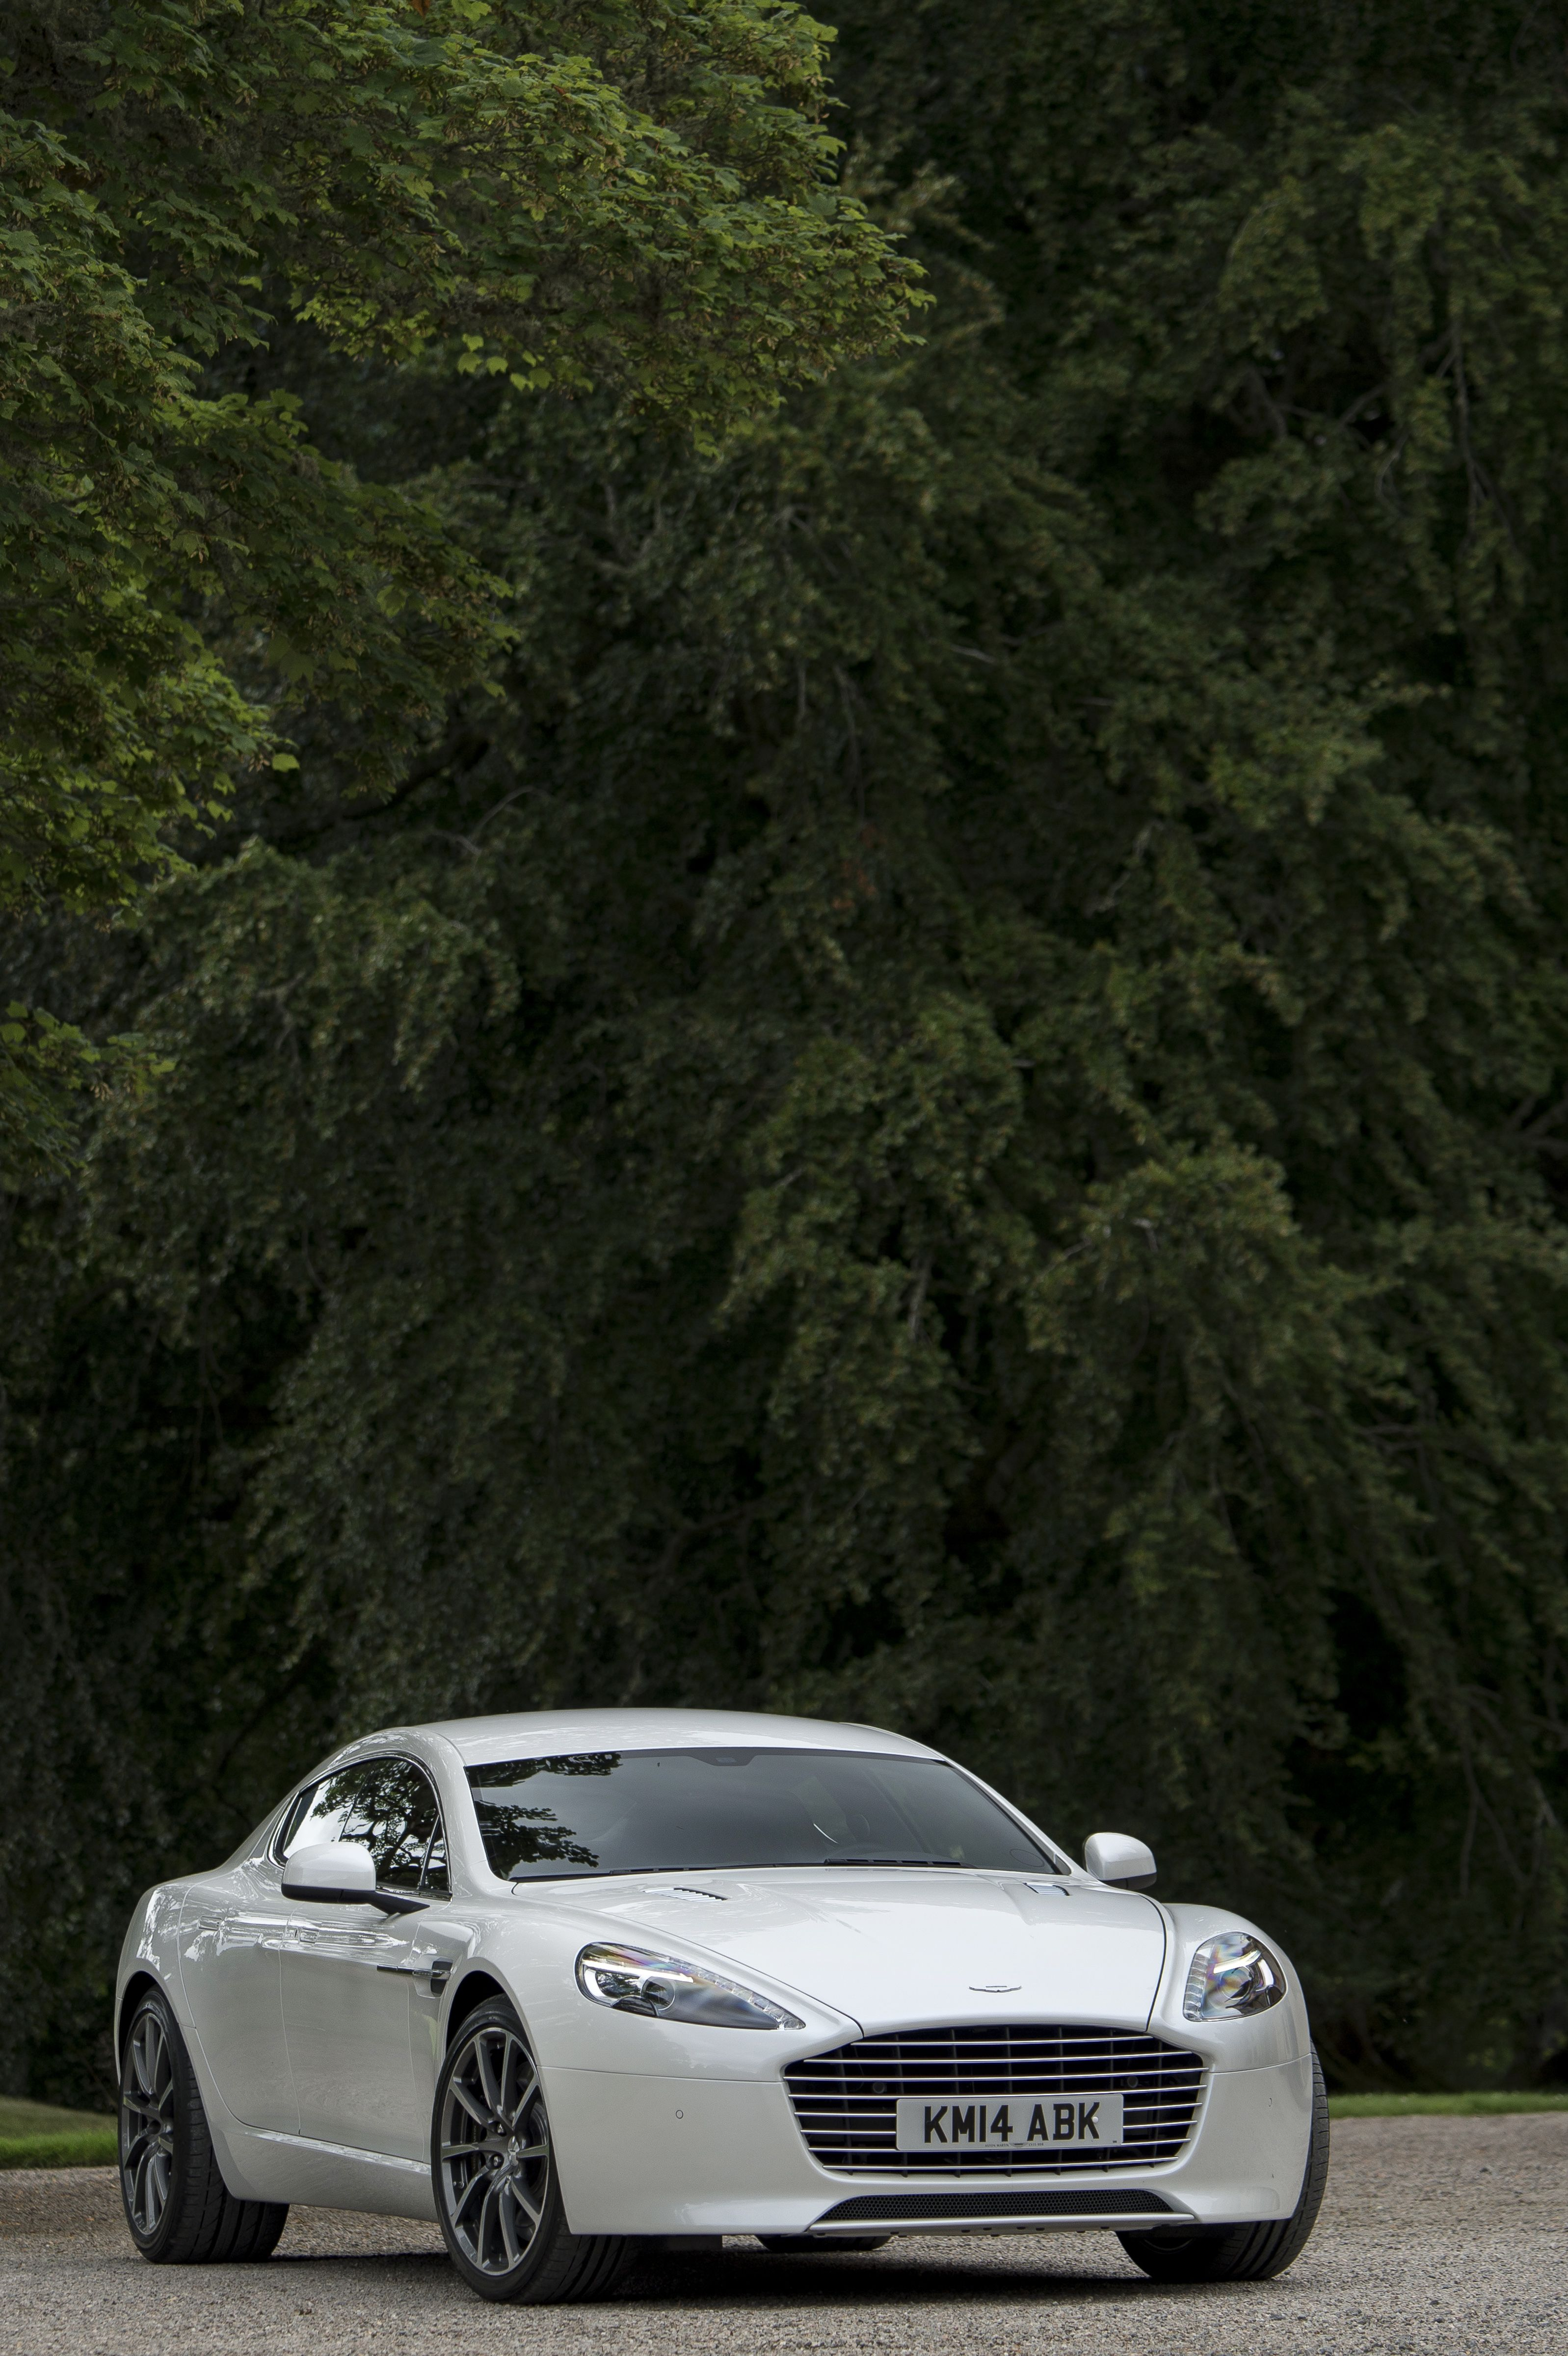 Aston Martin Rapide S The Worlds Most Beautiful  Door Sports Car Discover More At Www Astonmartin Com Cars Rapide S